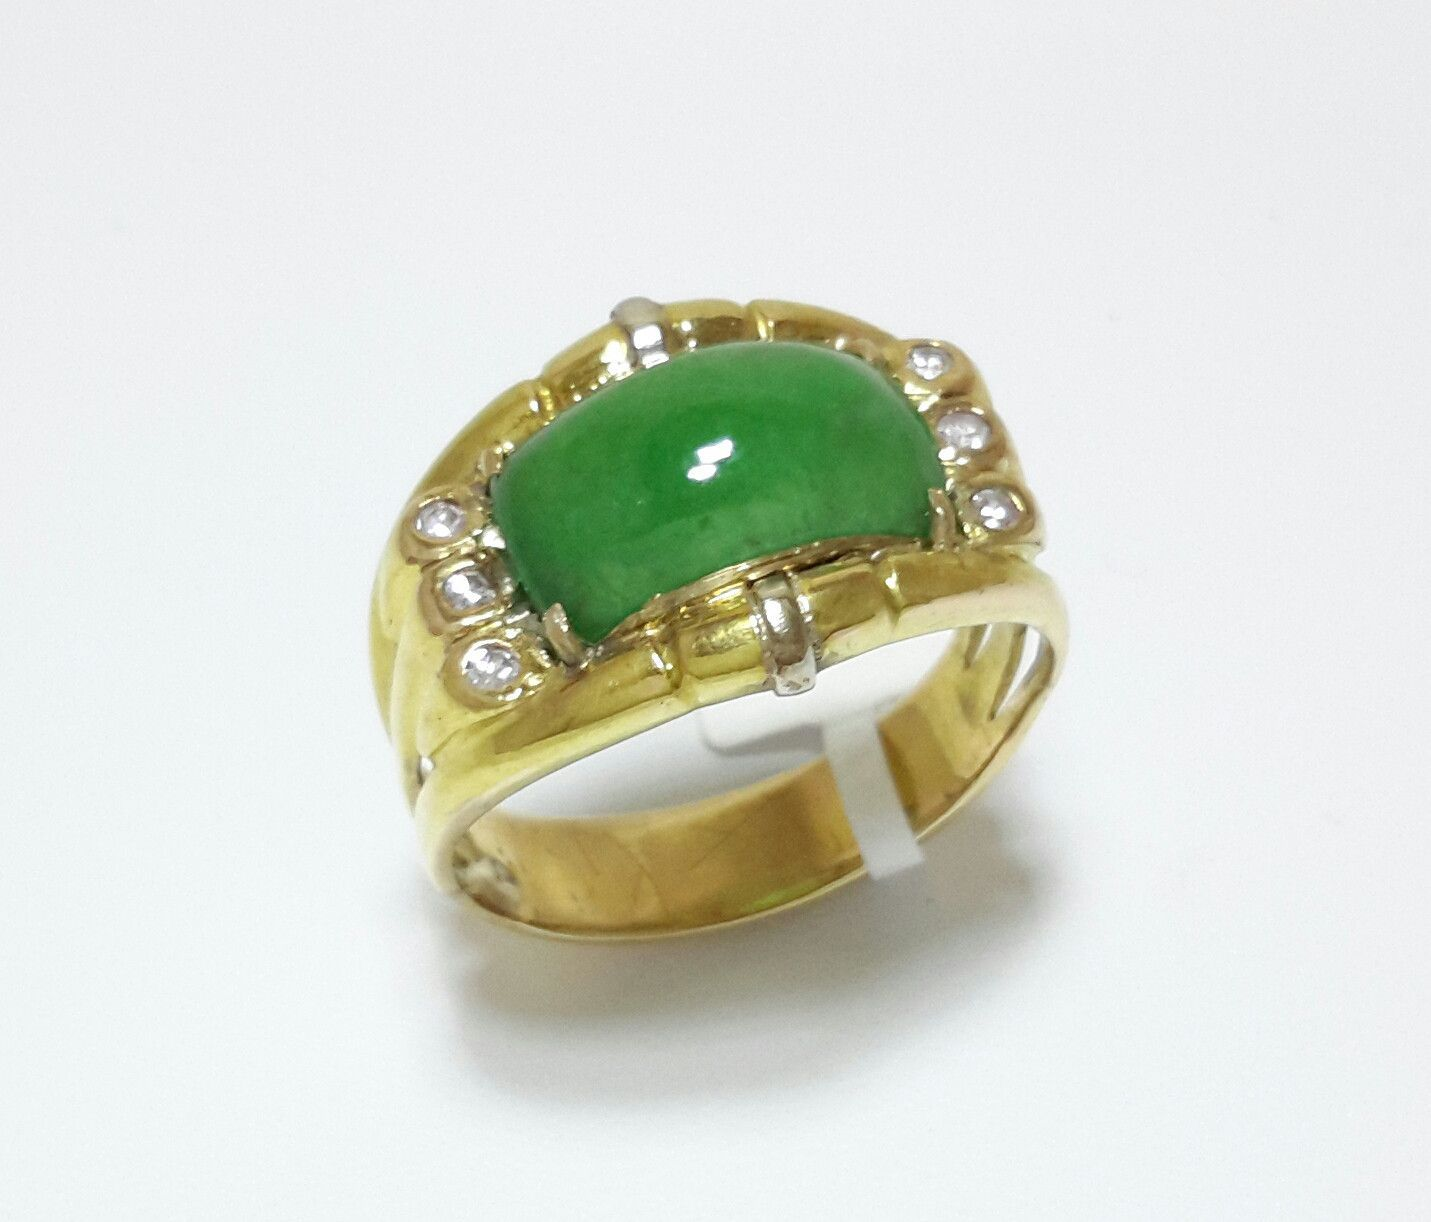 Natural color jade ring, unisex jade ring, green color jade ring, arch shape jade ring, jade ring, man jade ring